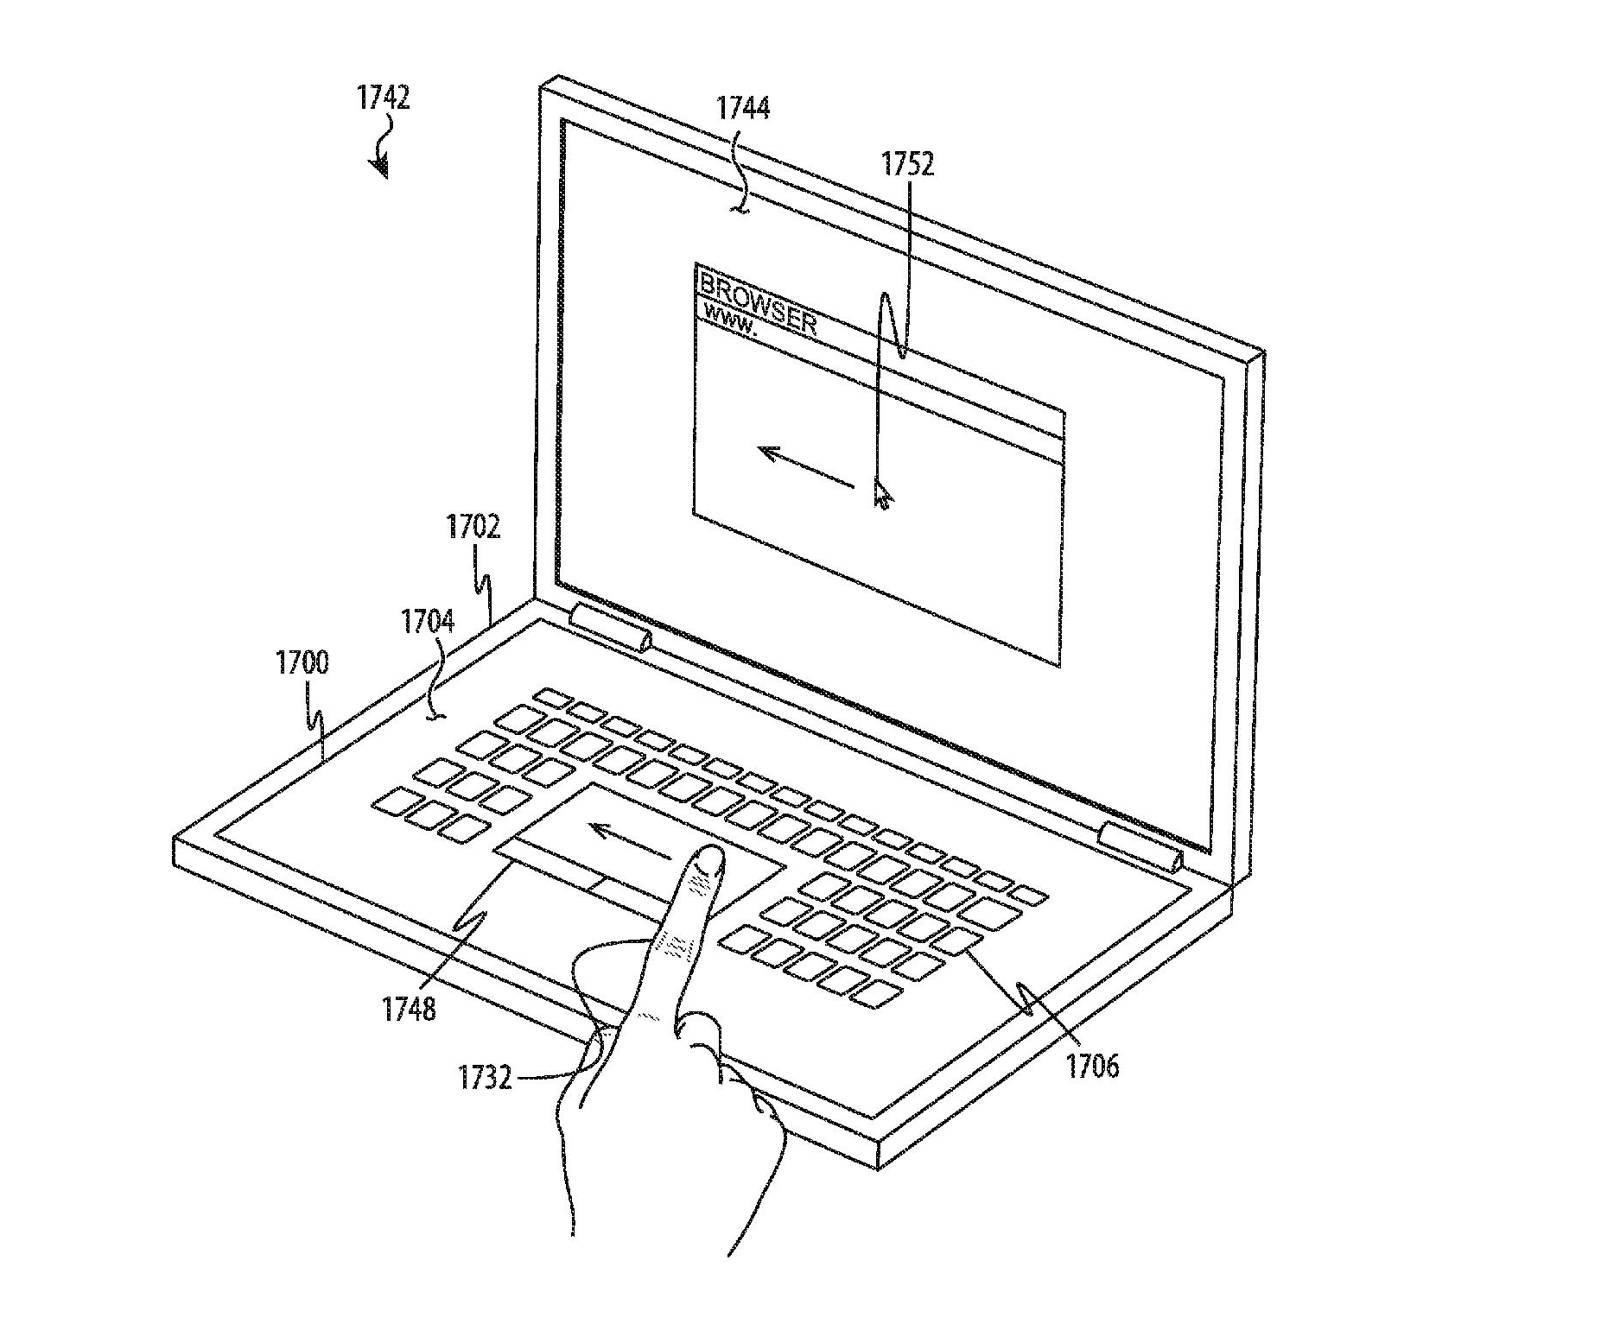 Apples Patent For A Touchscreen Macbook Keyboard Gives Us Glimpse Mp3 Fm Transmitter Circuit Diagram Review Ebooks At The Future Of Laptops Wired Uk